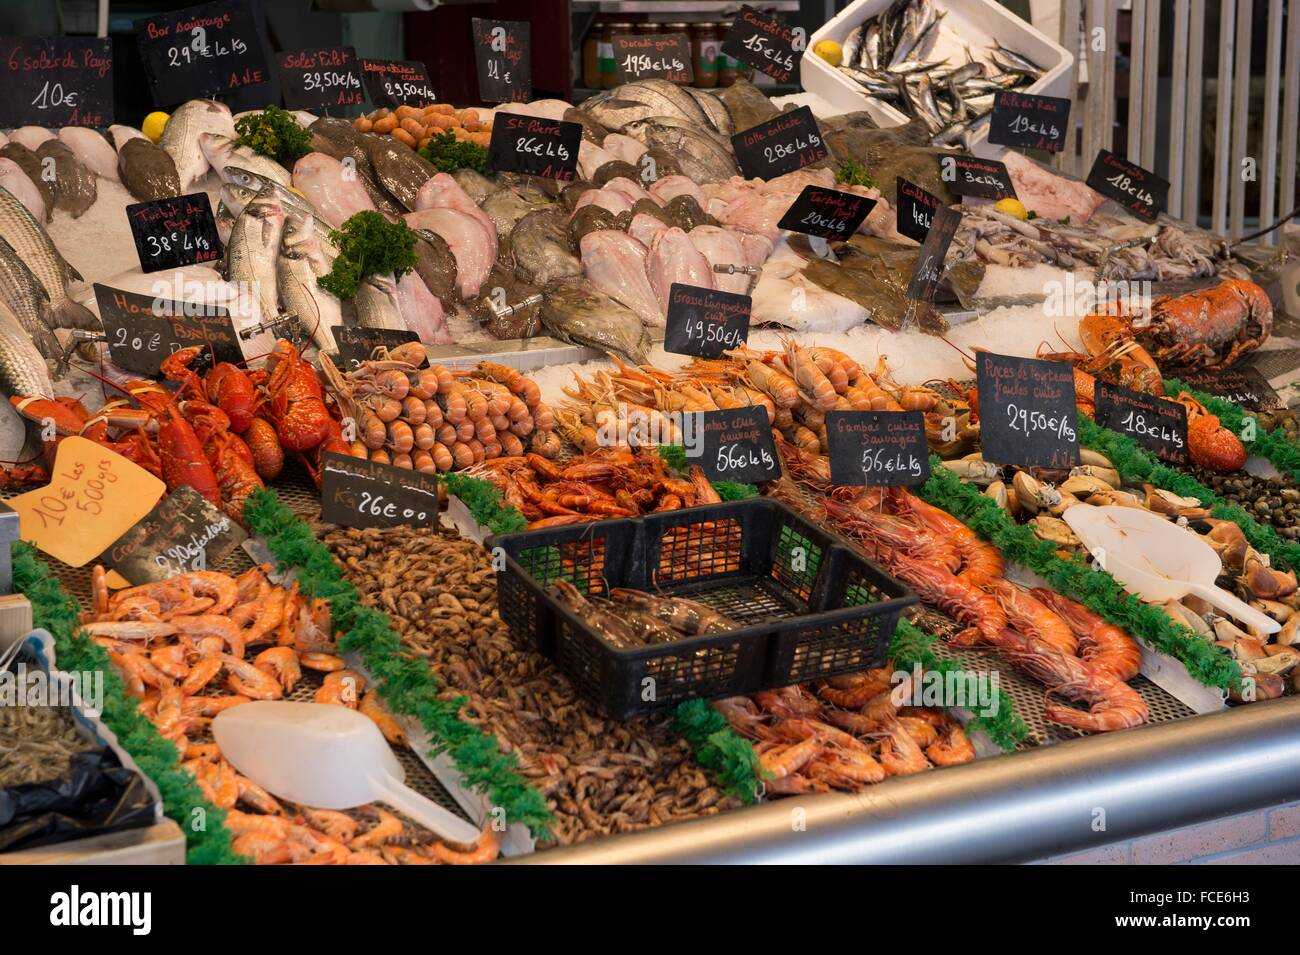 France, Normandy, fresh fishes and seefood displayed on a fish market - Stock Image